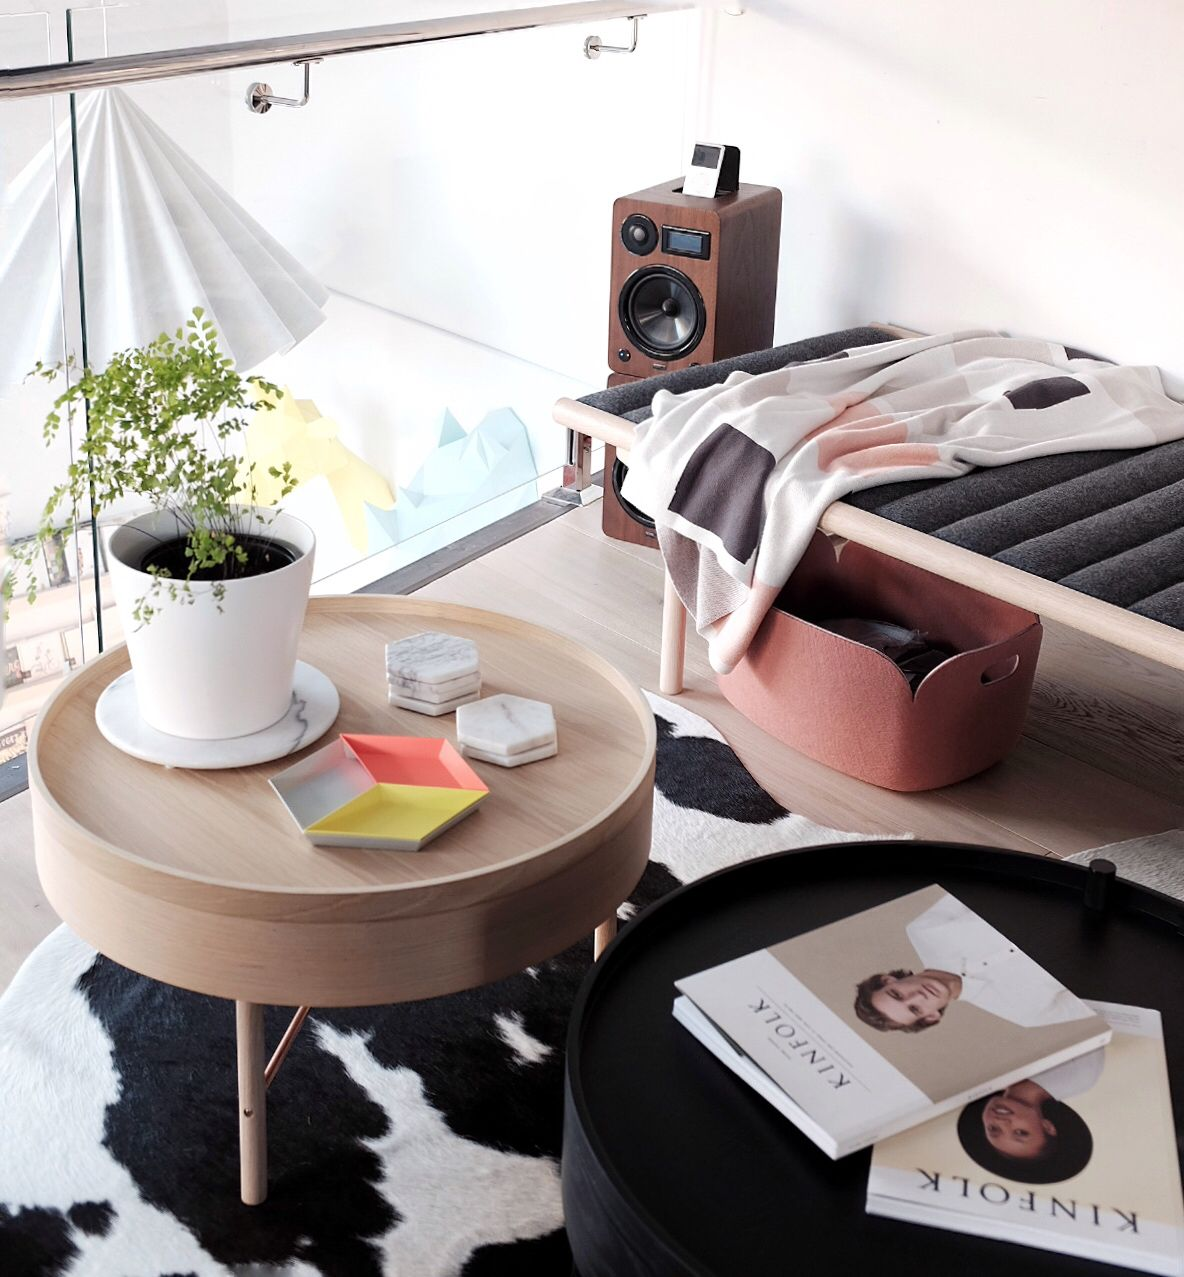 Retail Space Visual Merchandising: Our Living Room Featuring Menu Daybed,  Turning Table, Kate